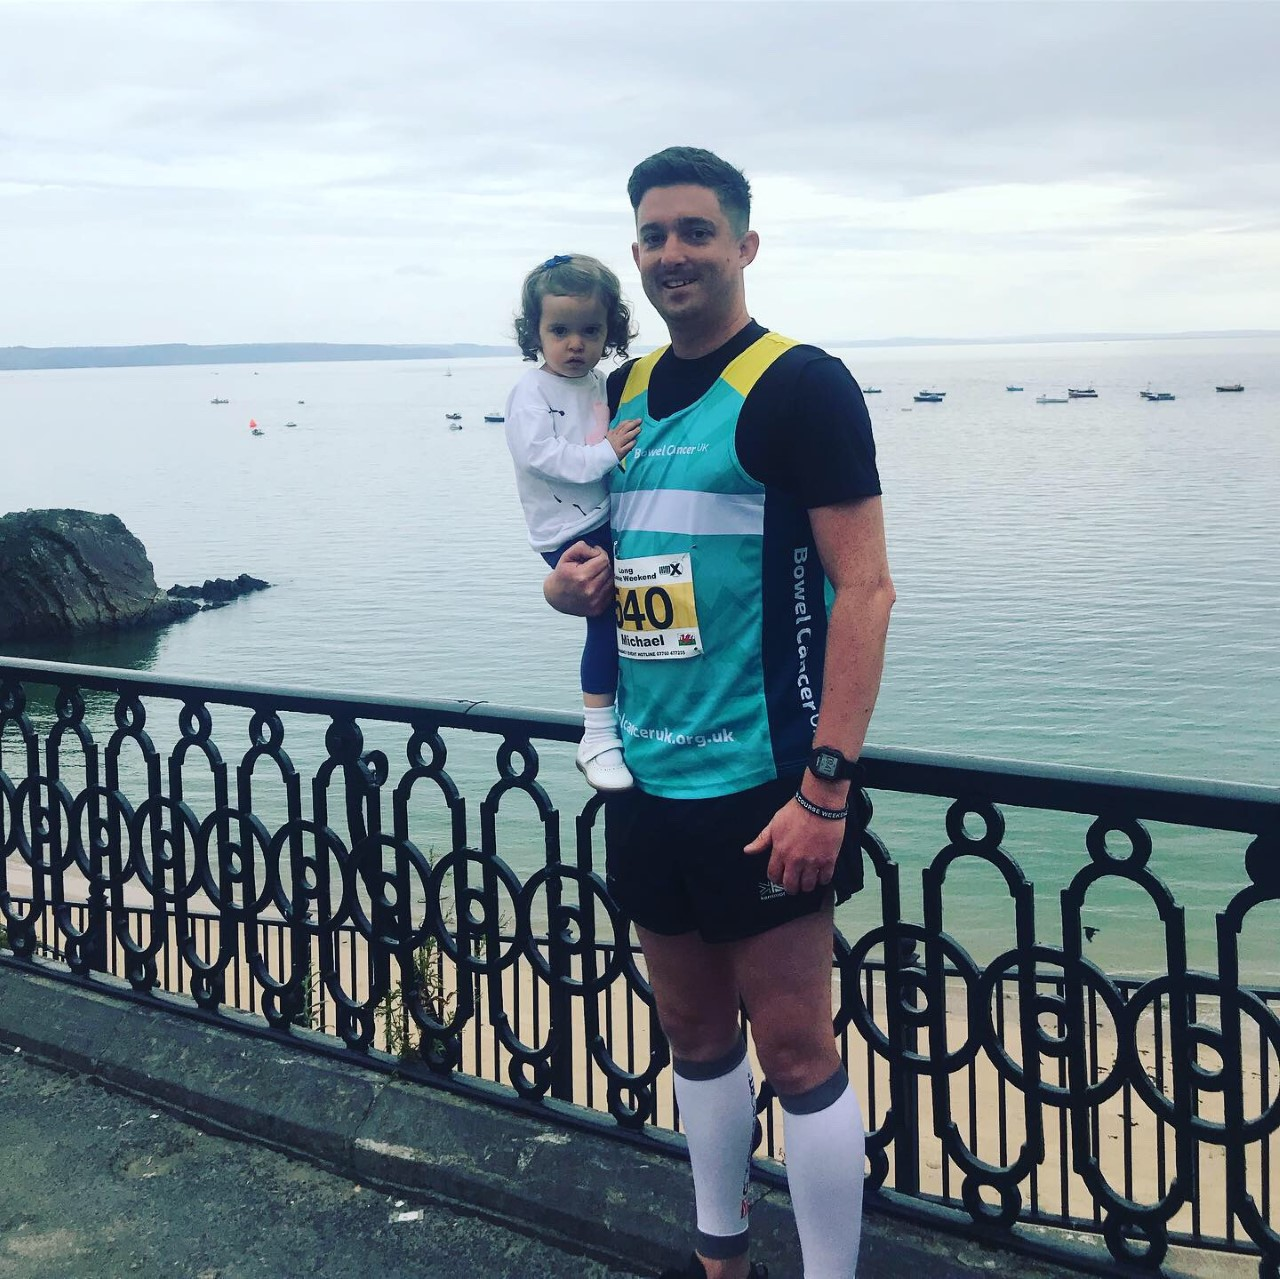 Wales fundraising manager Mike Locke pictured here in Bowel Cancer UK running vest with his daughter